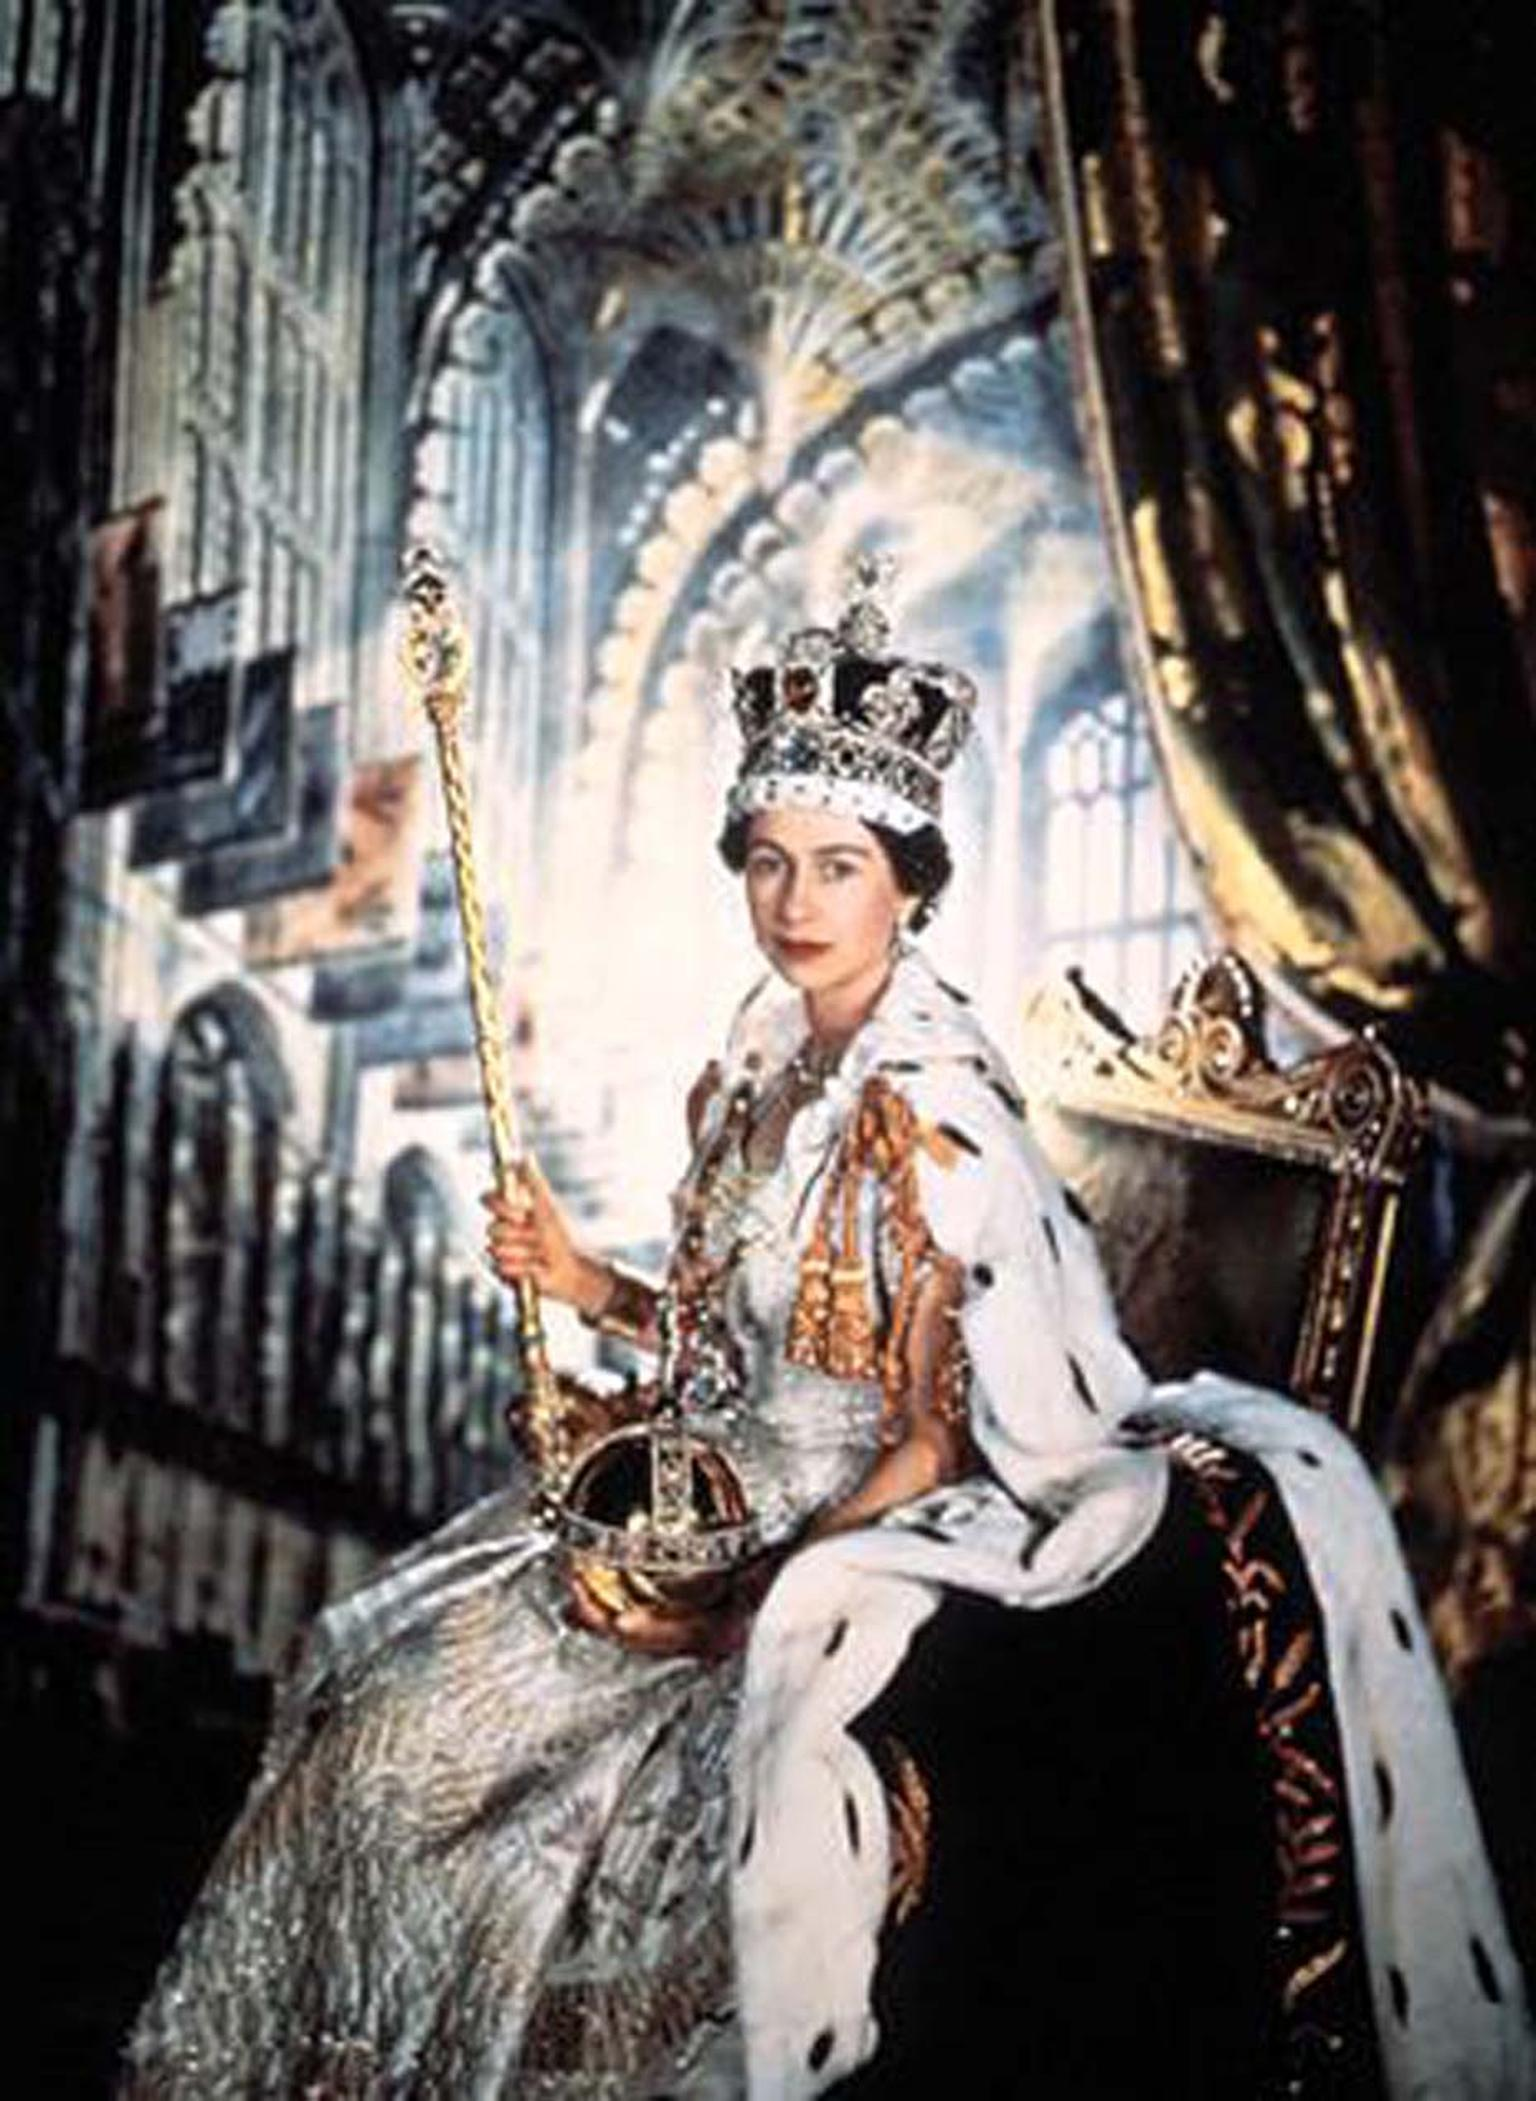 A portrait of Queen Elizabeth II at her Coronation wearing the Imperial State Crown and holding the Sceptre, both of which are set with diamonds cut from the famous Cullinan Diamond.